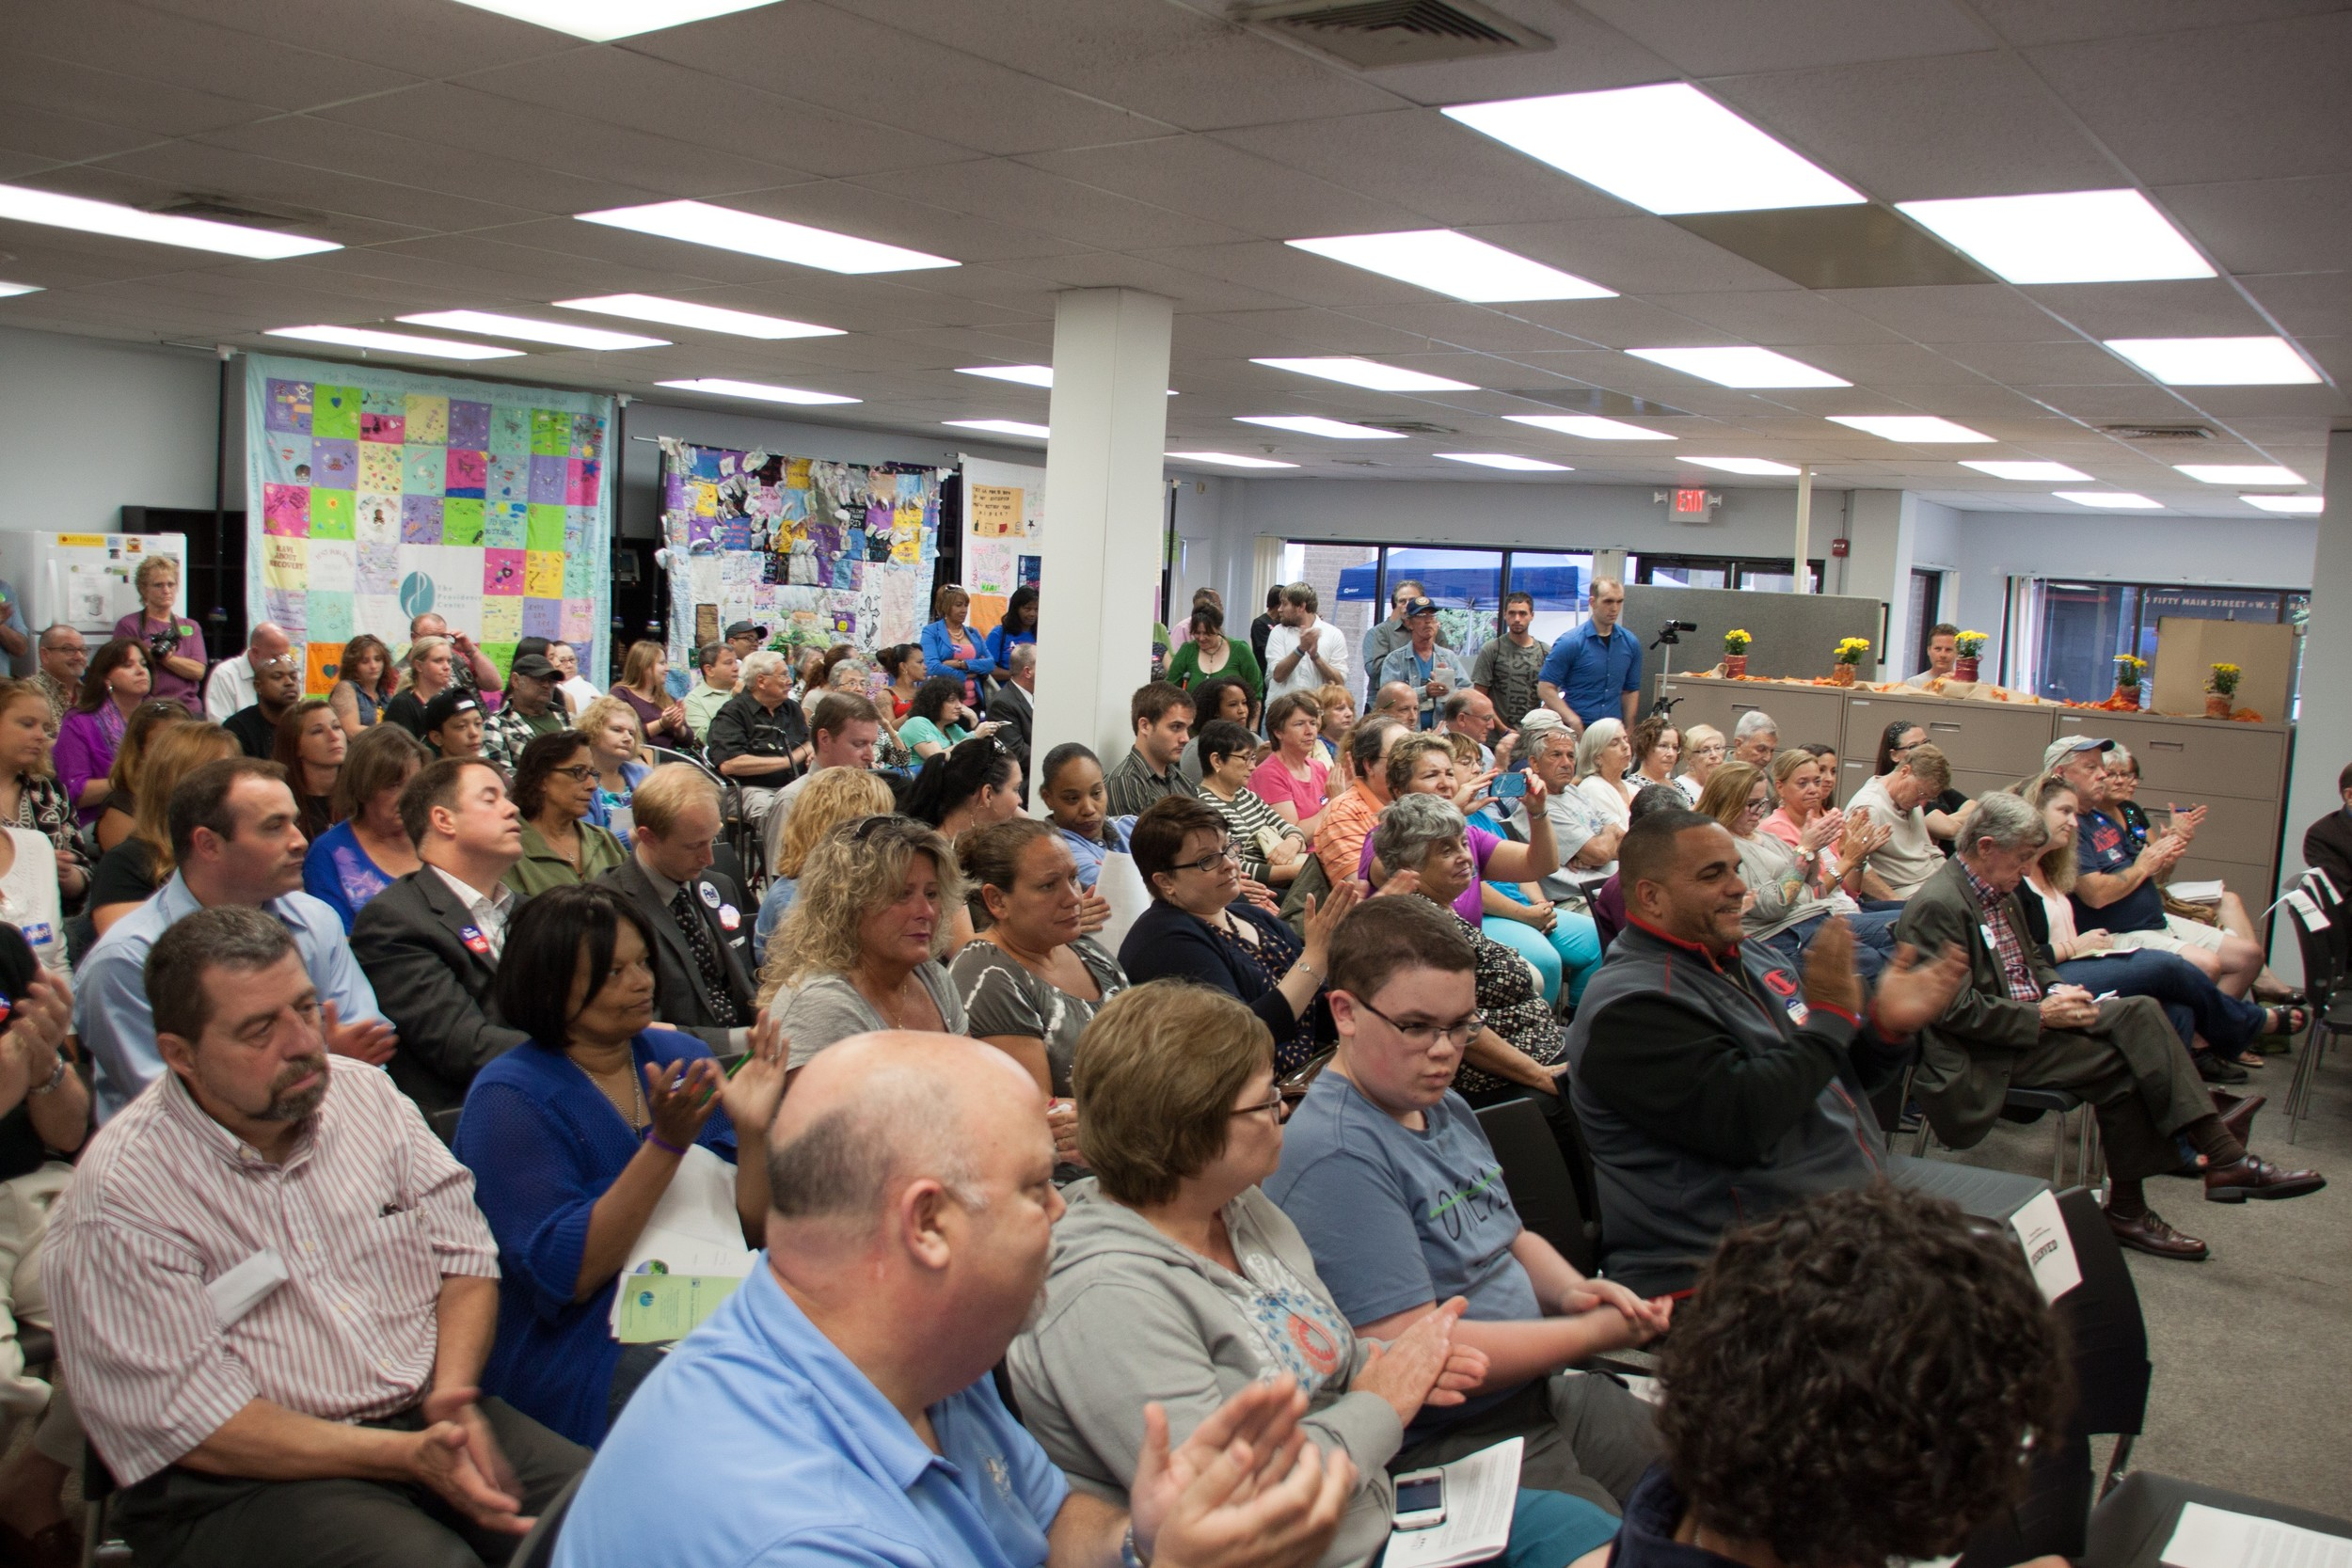 The RICares gubernatorial forum on Aug. 22 drew a capacity crowd of more than 150 people.